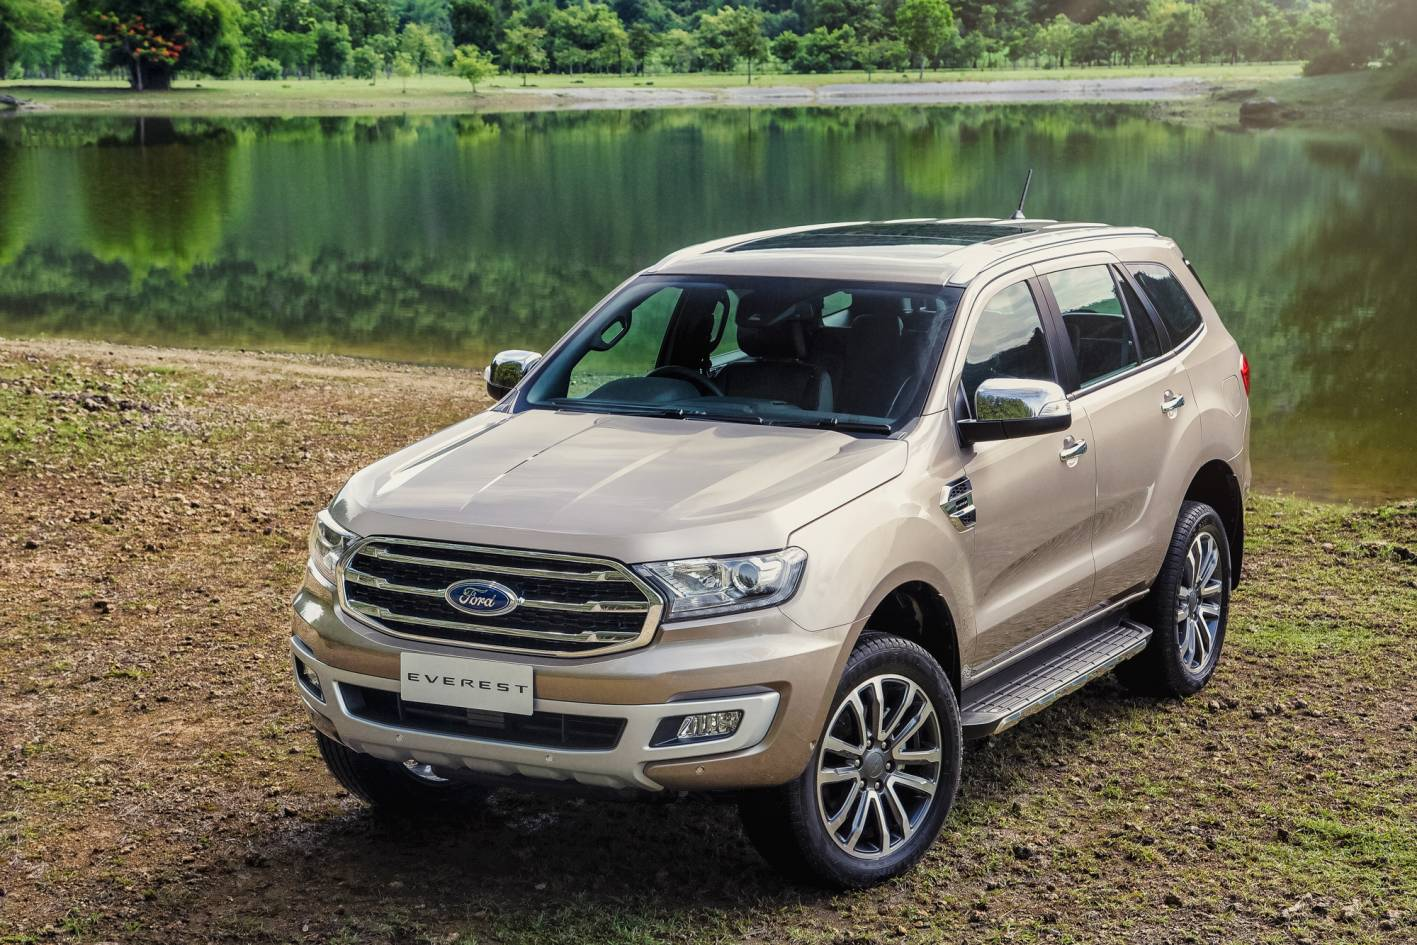 2019 Ford Everest Specs and Pricing